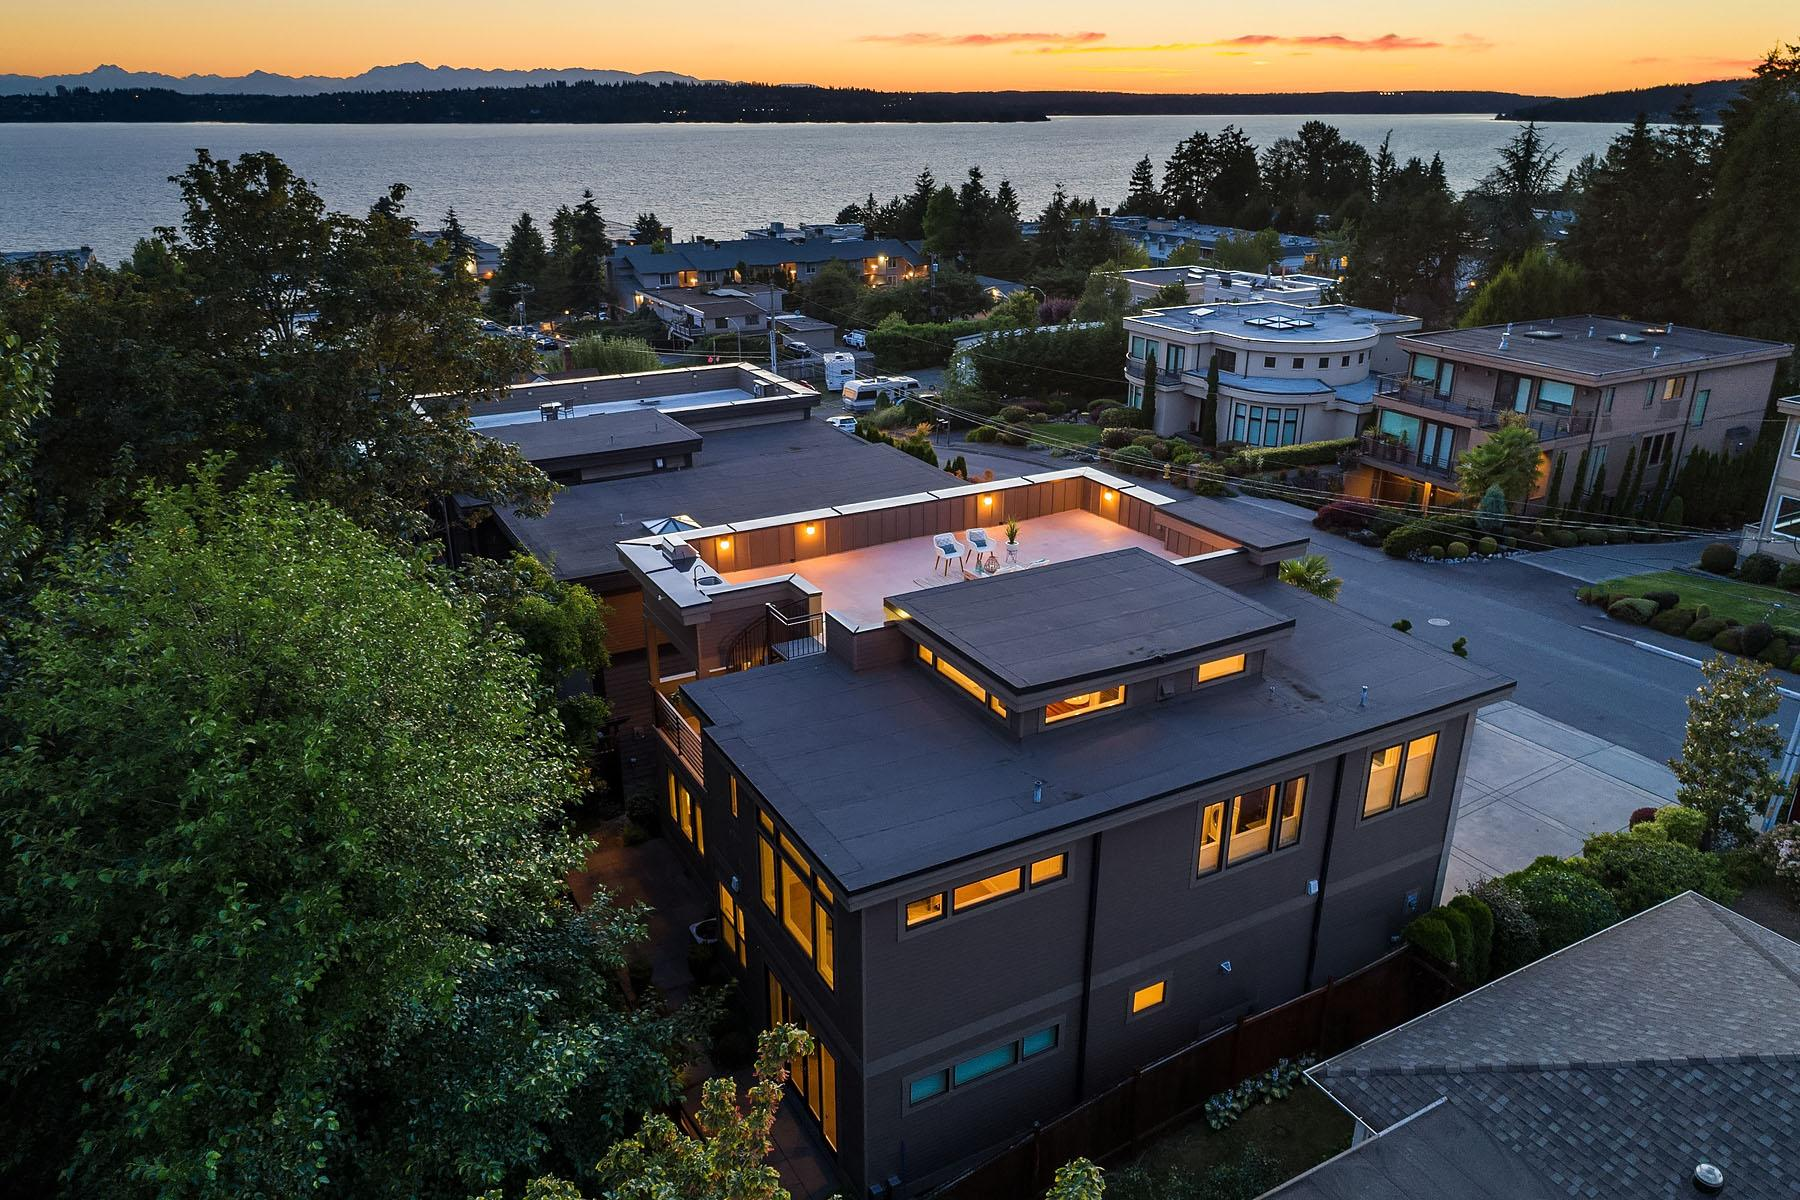 Walking distance to Kirkland's restaurants, shopping and waterfront - this 4 bed/2.75 bath is selling by Windermere's Max Rombakh for $2,299,000. Home's features include a wine cellar, rooftop deck, and probably most notably, the home backs into a lush greenbelt - rare to find in the Houghton neighborhood. MLS #1357060 for more info. (Image: Matthew Gallant, NW Clarity / Windermere)